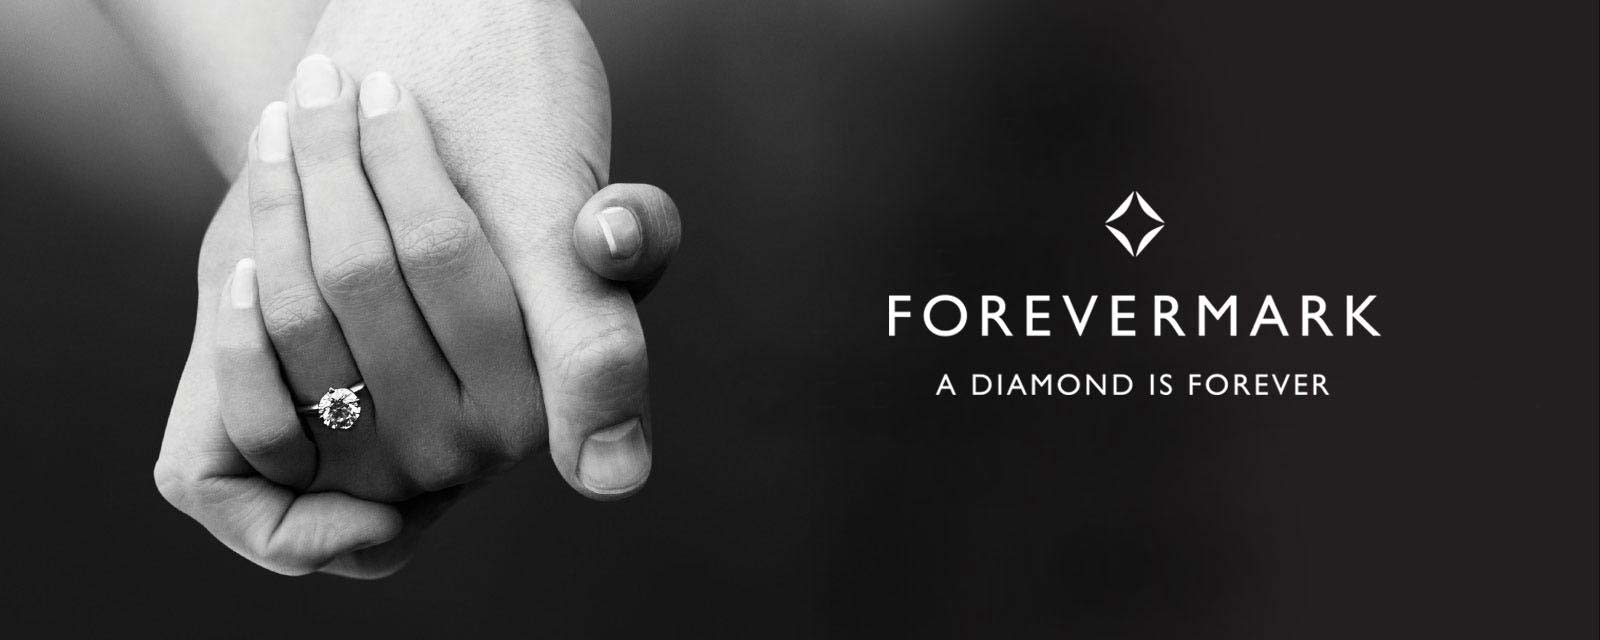 Forevermark. The Diamond. The Promise.